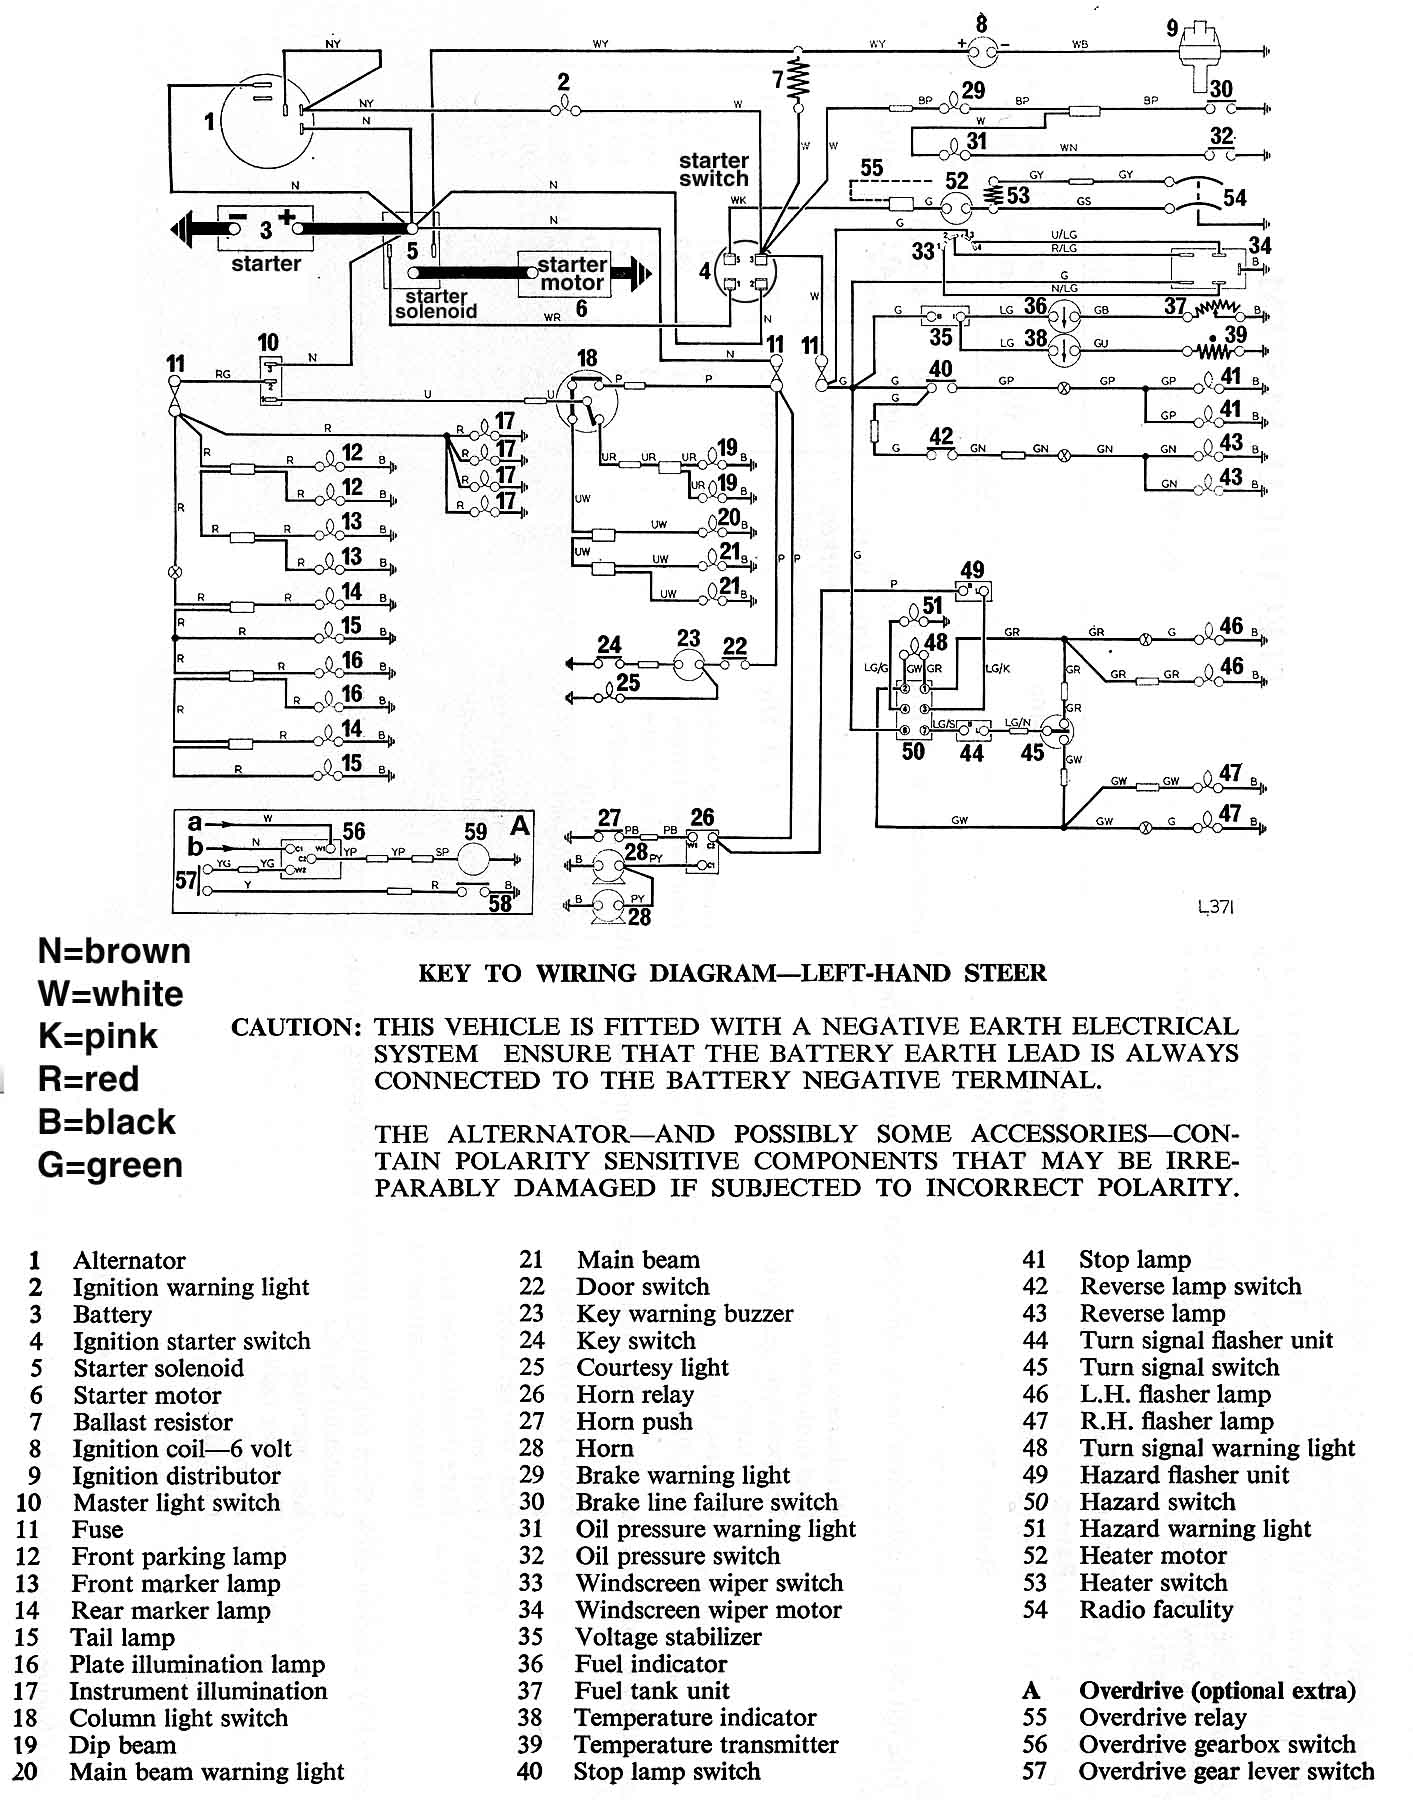 Beginnings Of Datsun Name From on w124 wiring diagram